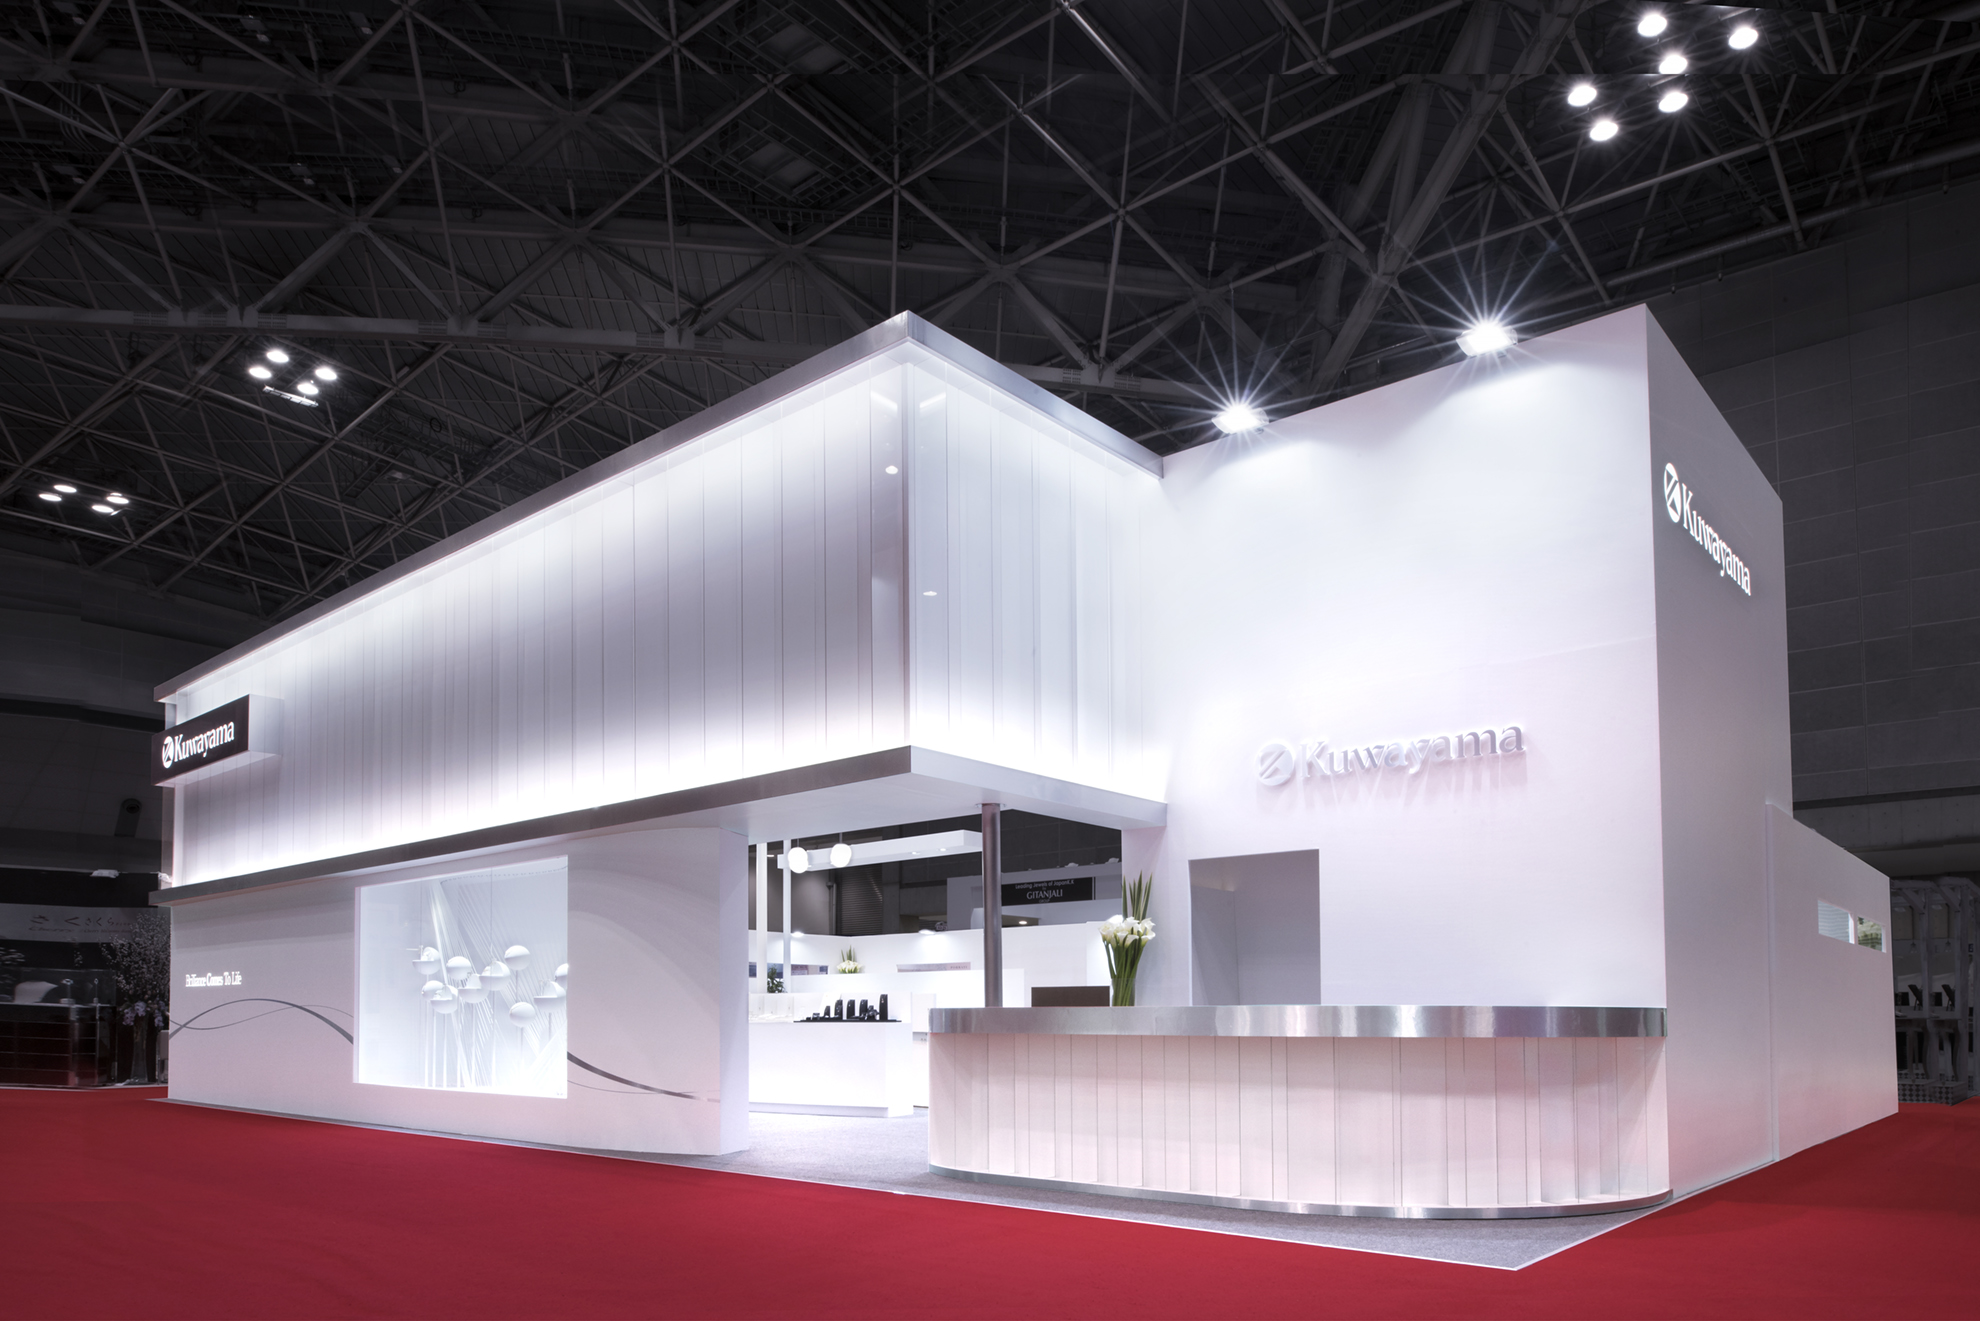 27th Tokyo International Jewelry Exhibition 2016 / Kuwayama Booth